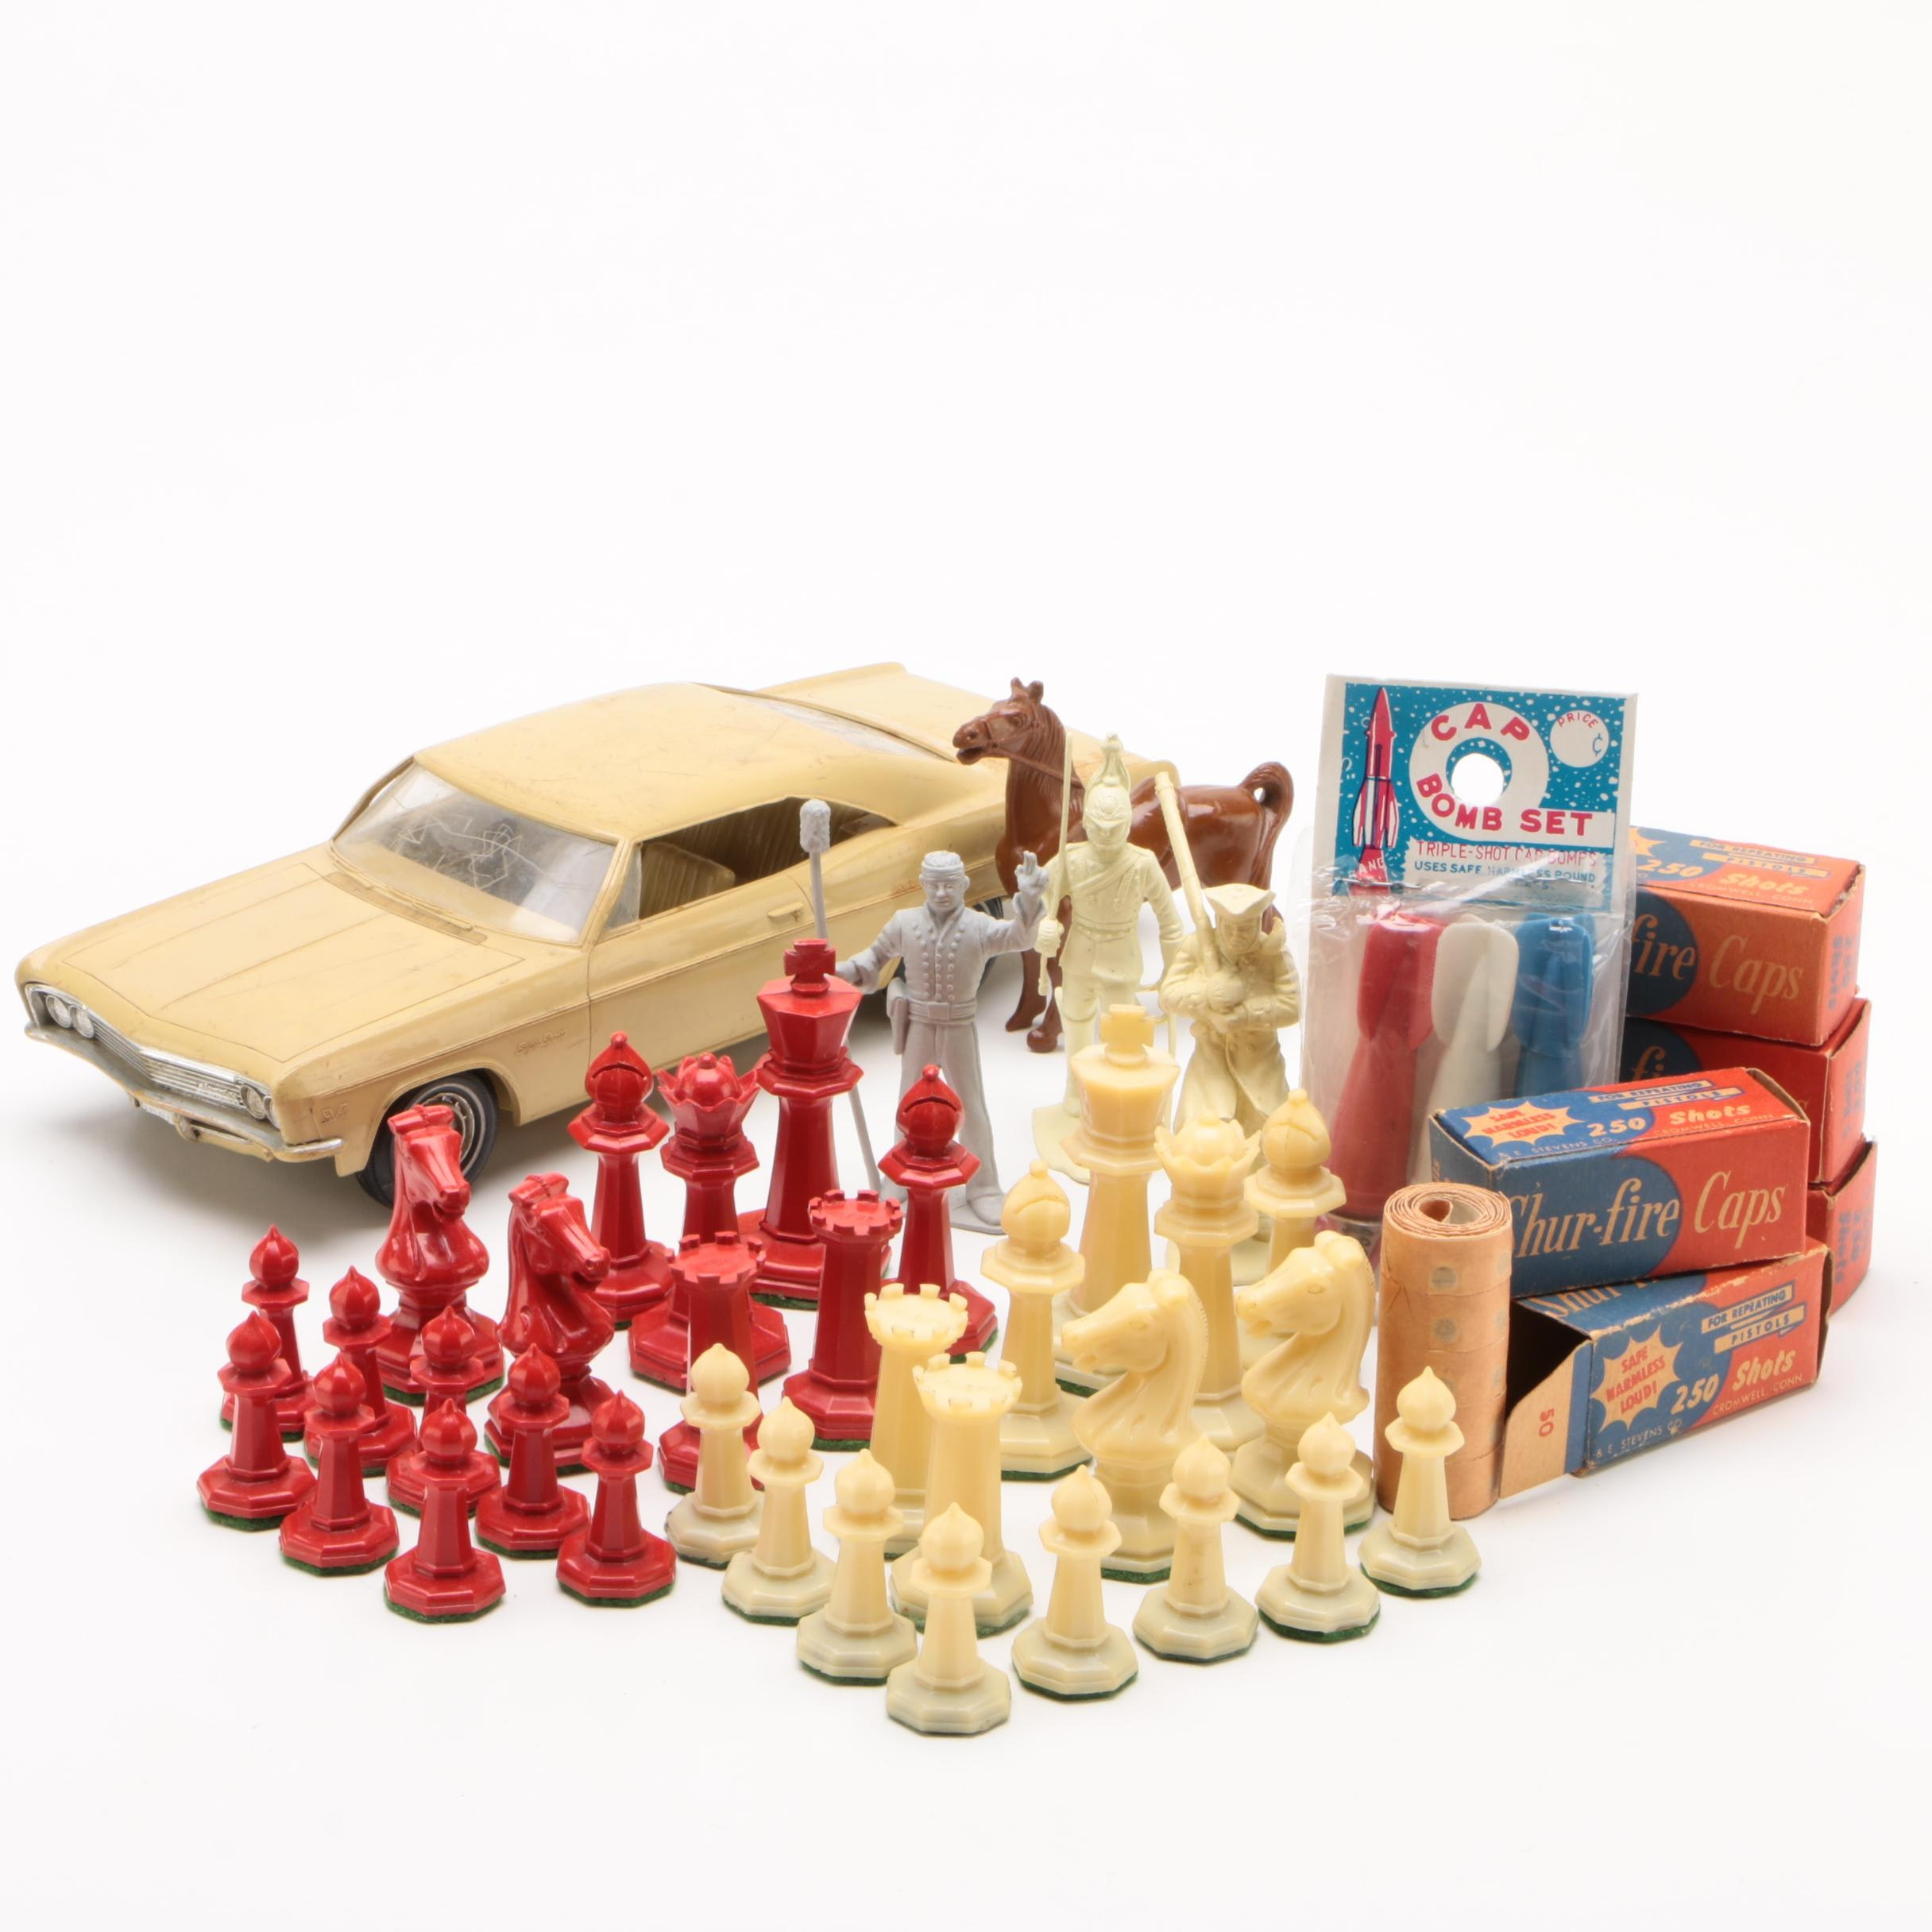 Drueke Plastic Chess Pieces with Shur-Fire Caps, Cap Bombs, and More